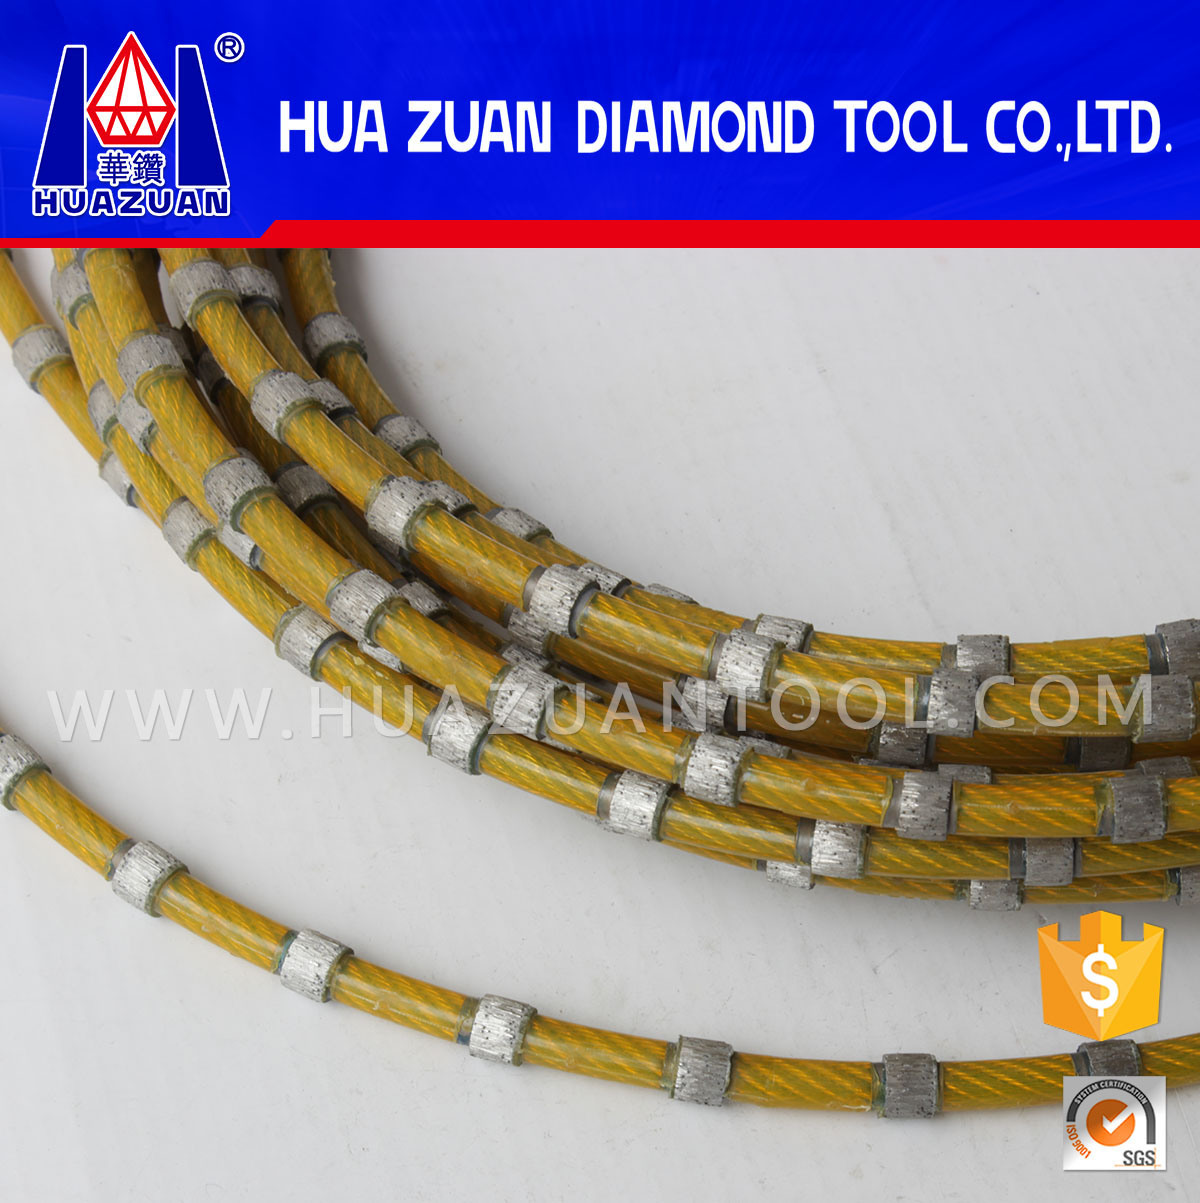 Diamond Wire Saw for Cutting Granite